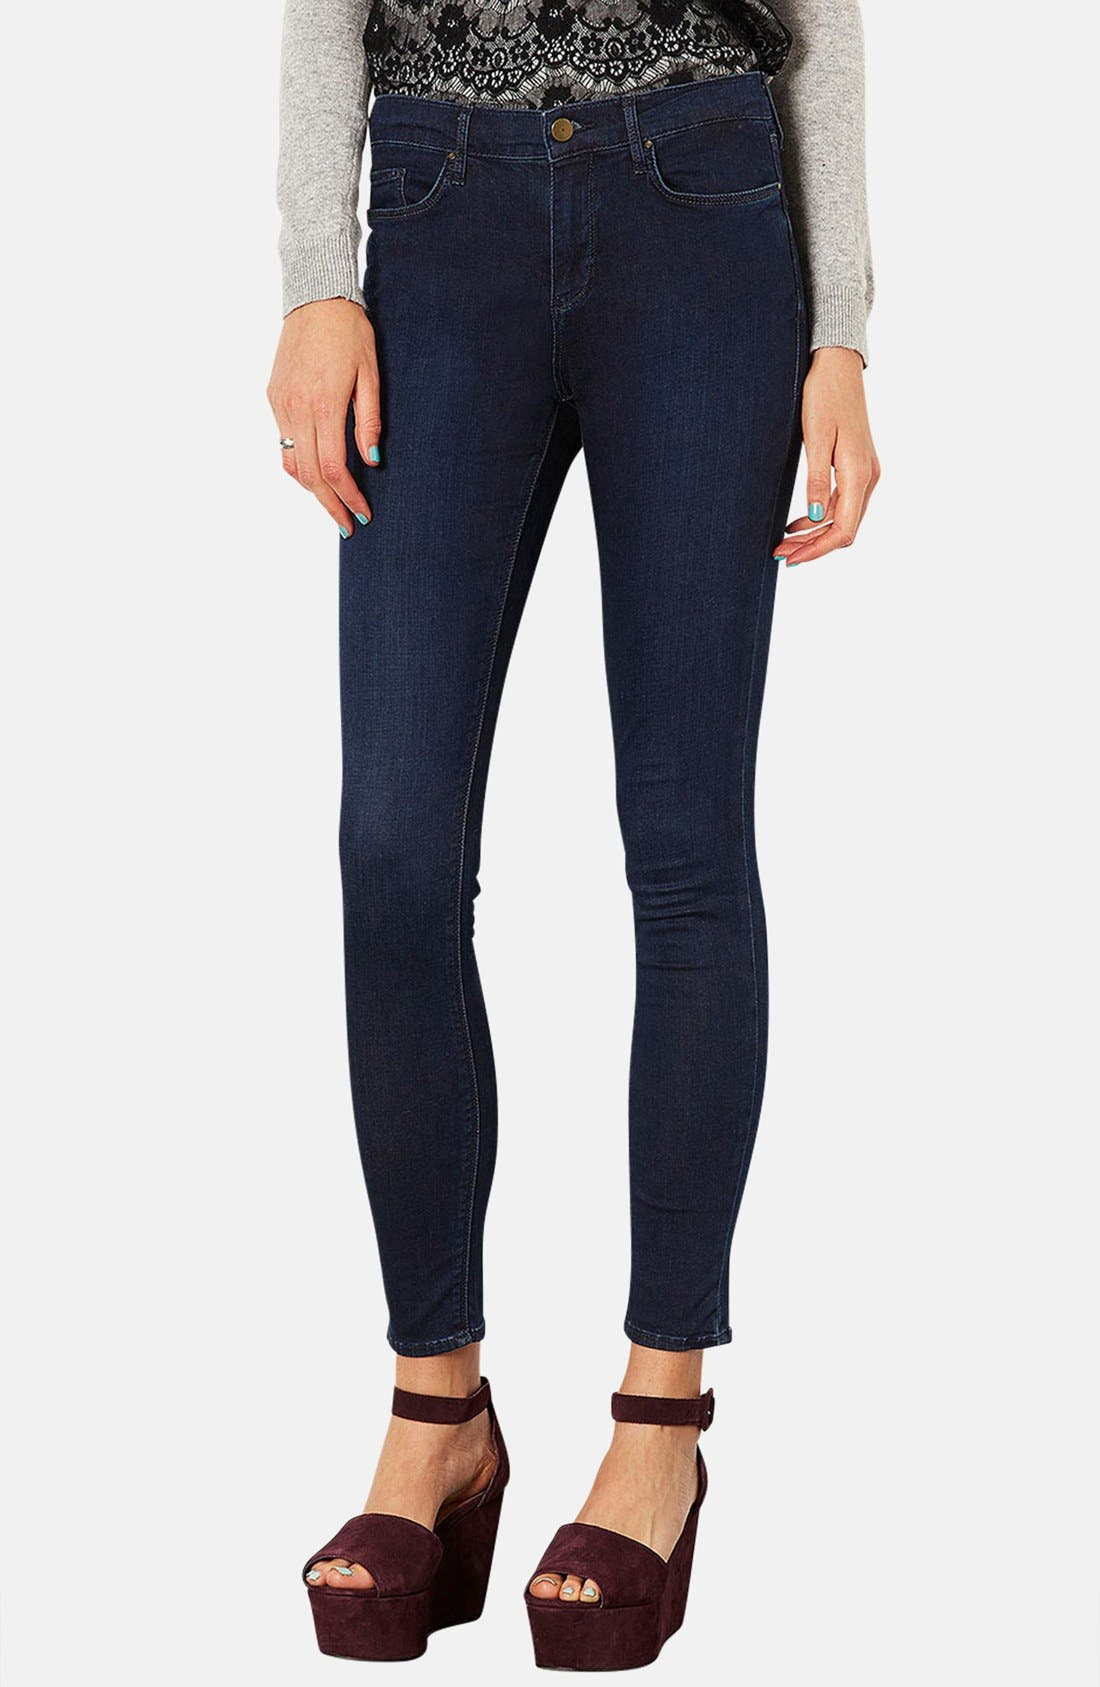 Alternate Image 1 Selected - Topshop Moto 'Leigh' Skinny Jeans (Blue Black) (Regular & Long)